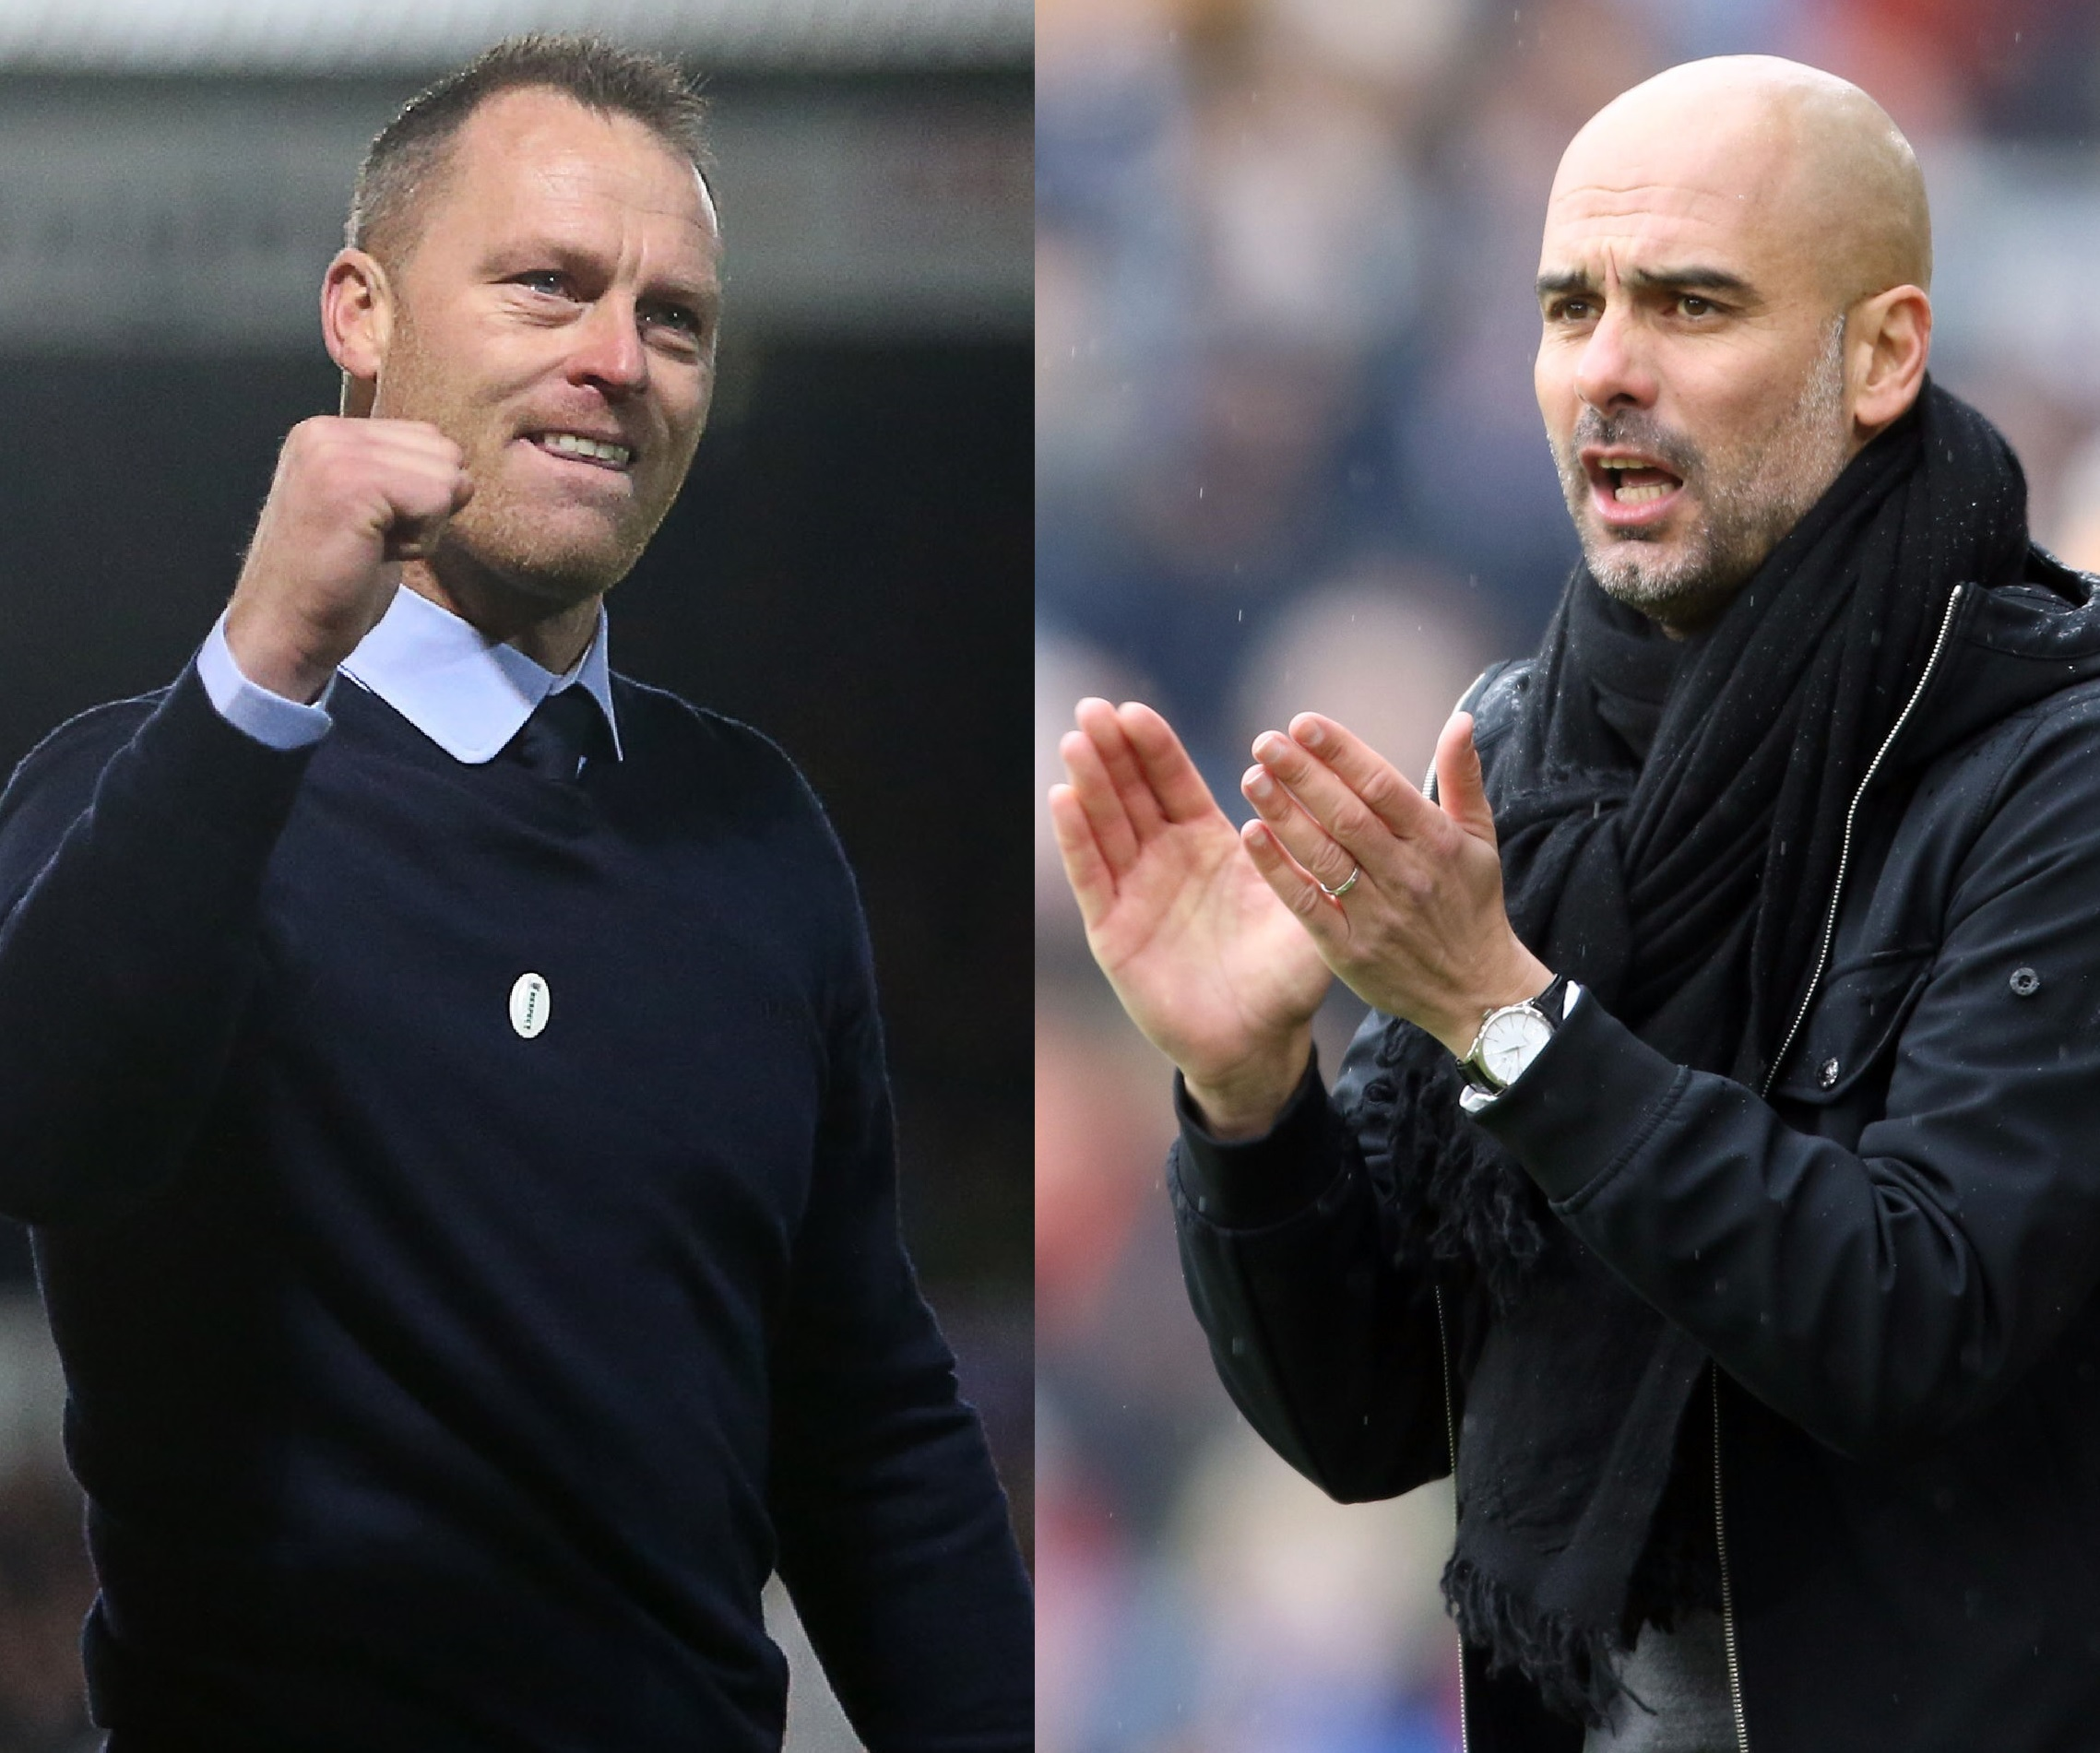 RESPECT: Newport County manager Michael Flynn, left, and Manchester City boss Pep Guardiola